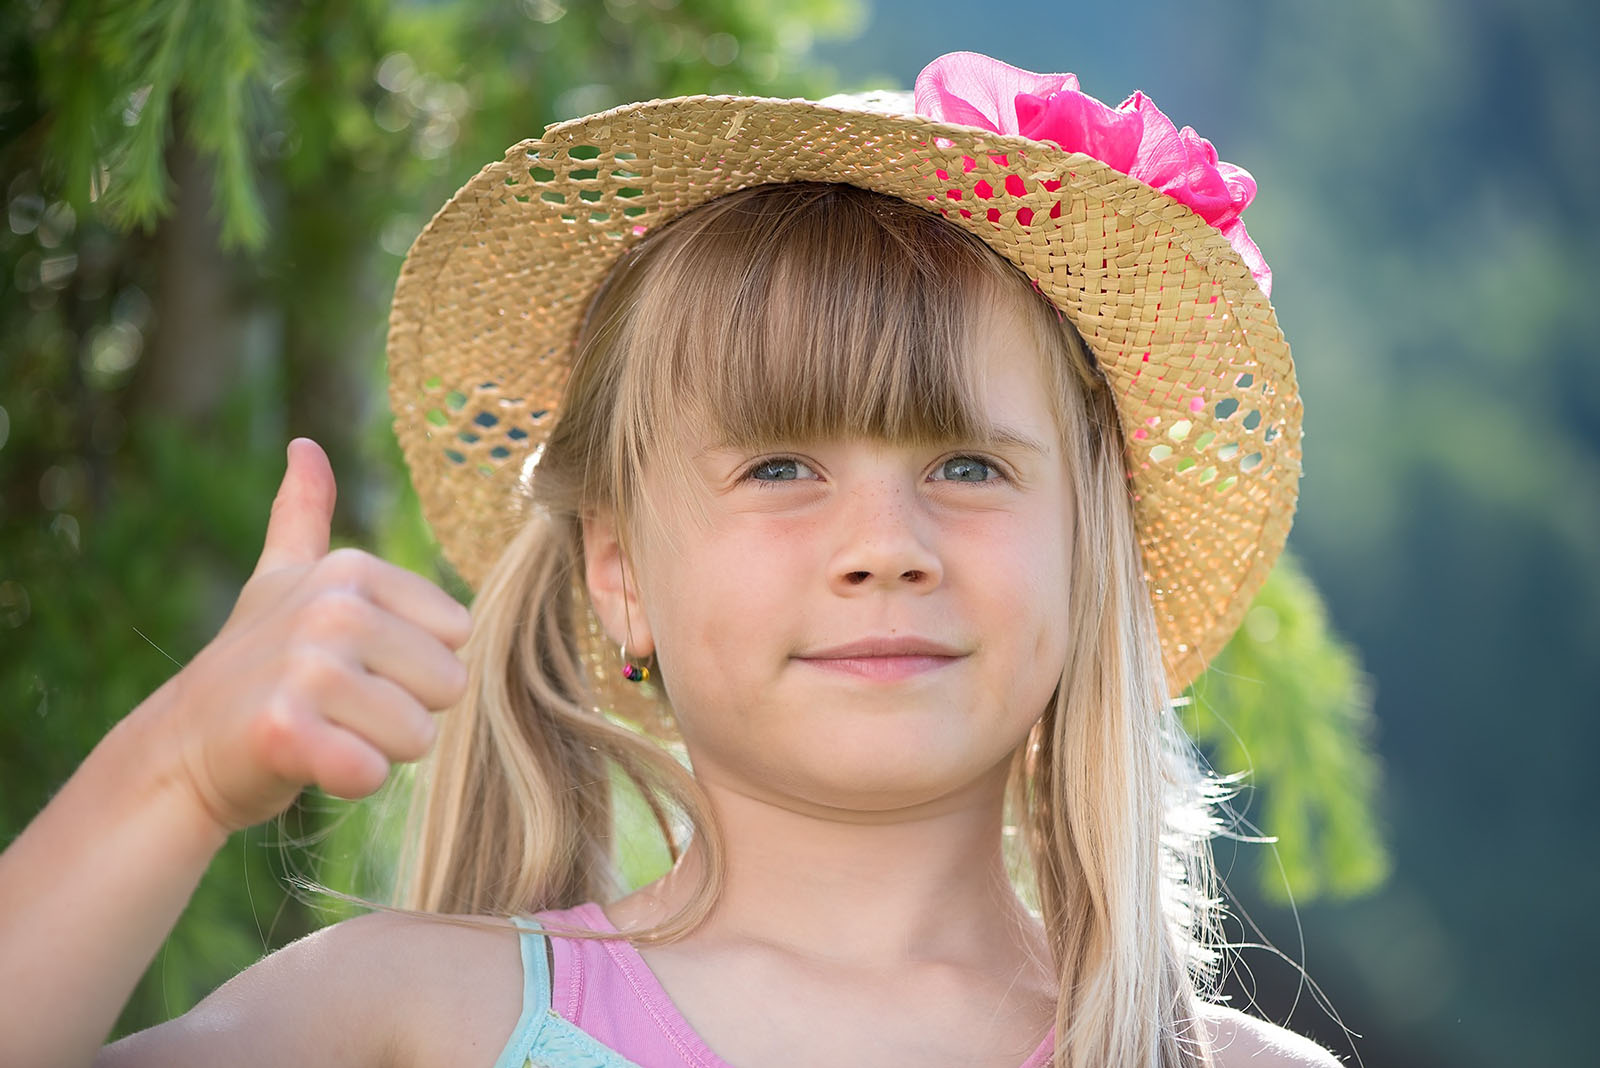 A young child with blonde hair and a summer hat giving a blank expression thumbs up to the camera.